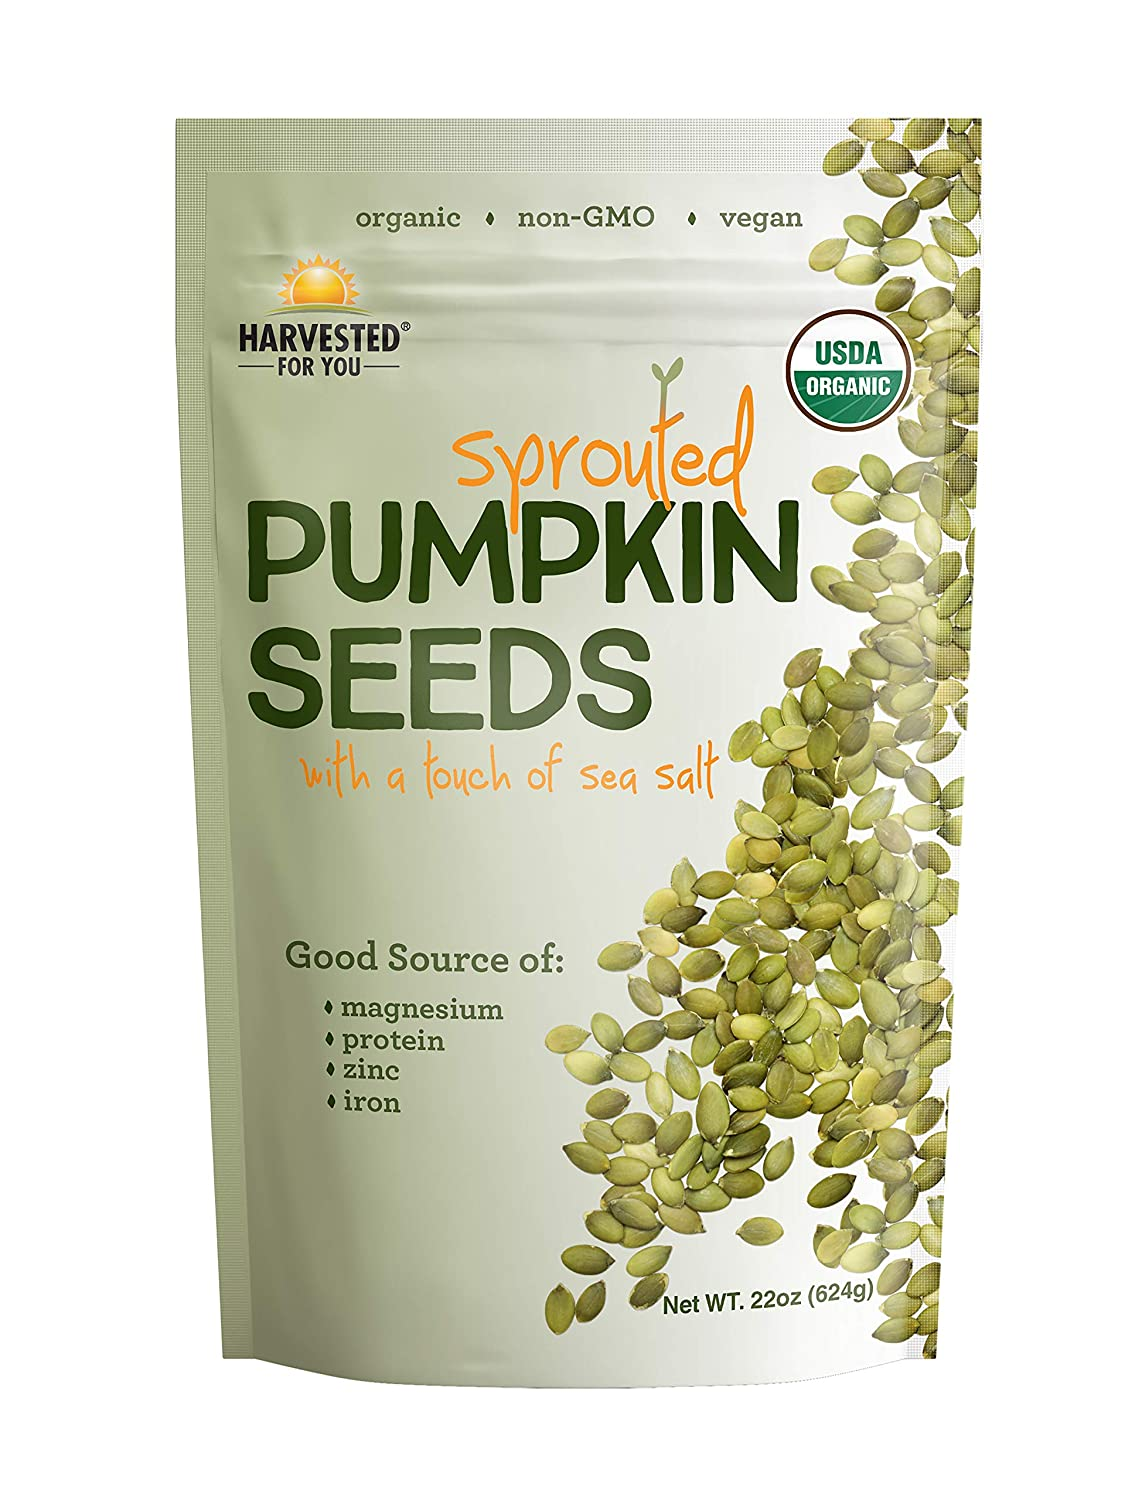 Harvested For You Sprouted Pumpkin Seeds with Sea Salt 22oz Bag, Non GMO, Keto Snacks, Paleo, Gluten Free, Vegan, Organic, Plant Based, High Protein, Whole 30, Low Glycemic Index, Peanut Free Facility